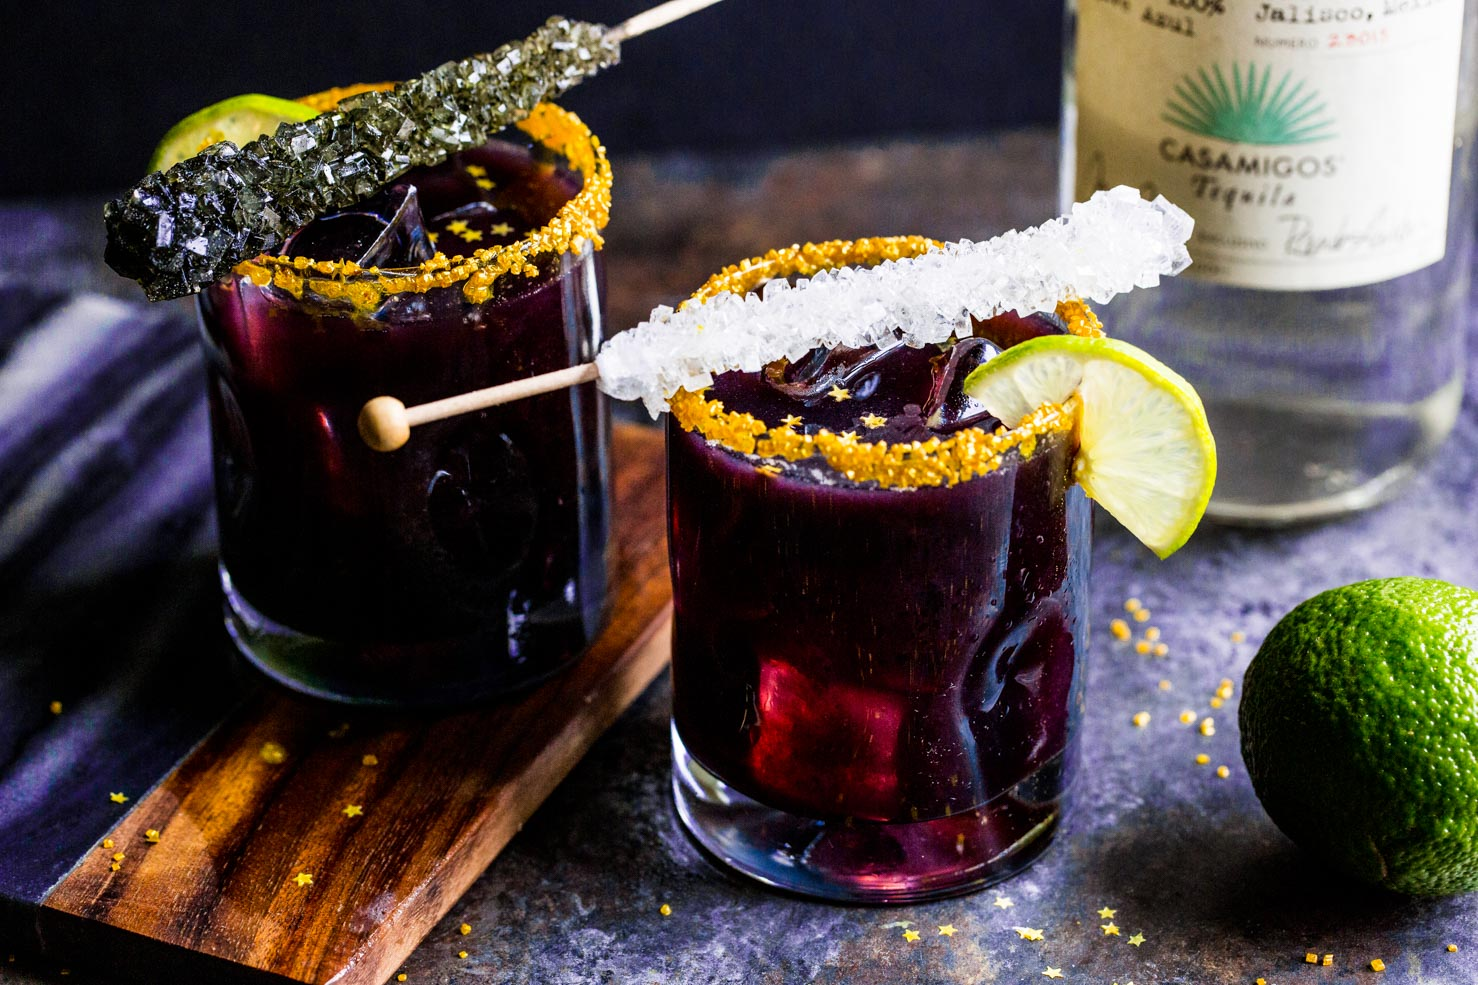 Oilman Margaritas Recipe - Black Margaritas displayed with rock candy and stars